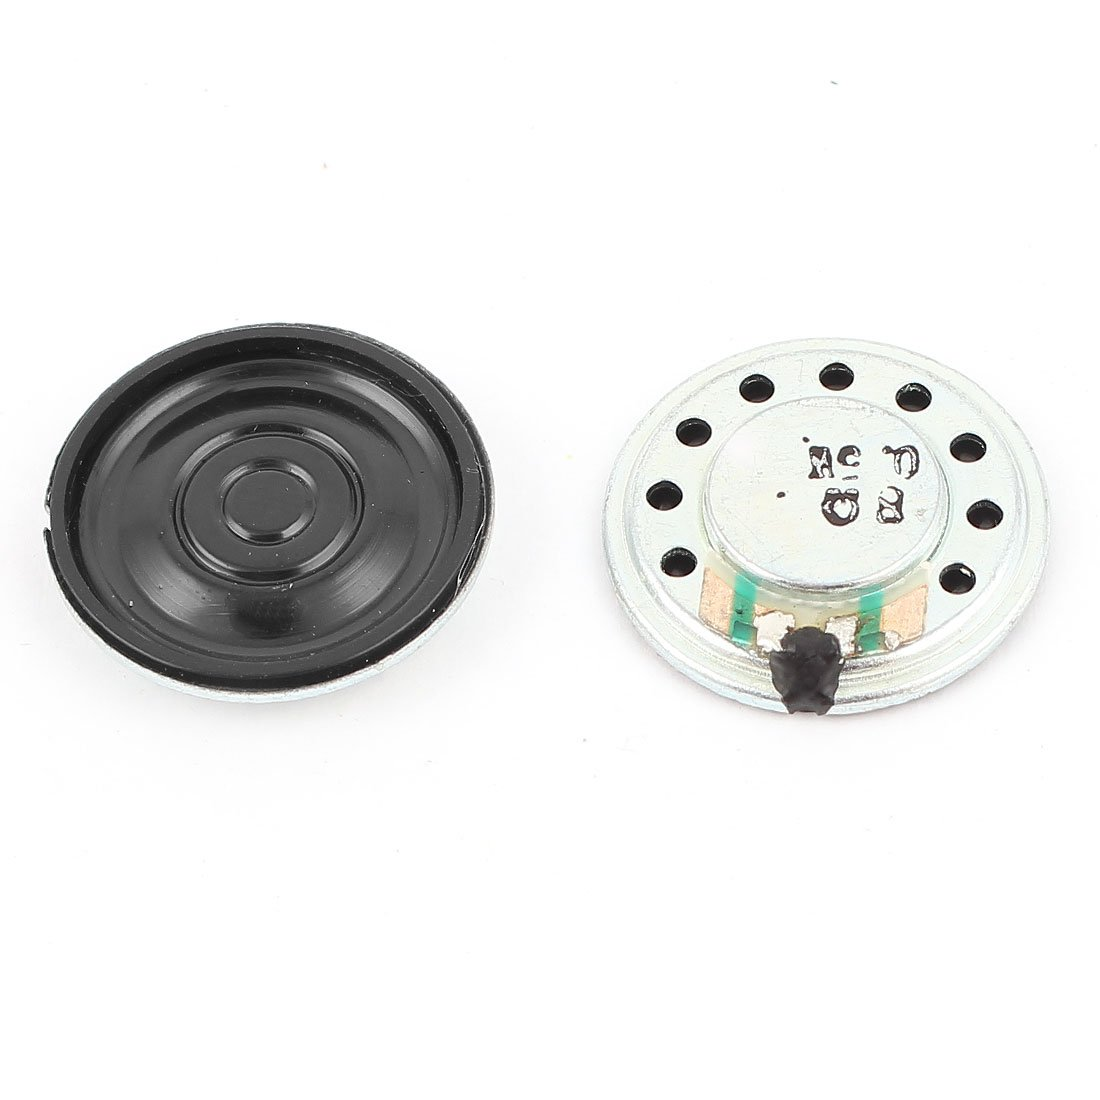 uxcell 2Pcs 0.5W 8Ohm 20mm Round Inside Magnet Electronic Speaker Trumpet